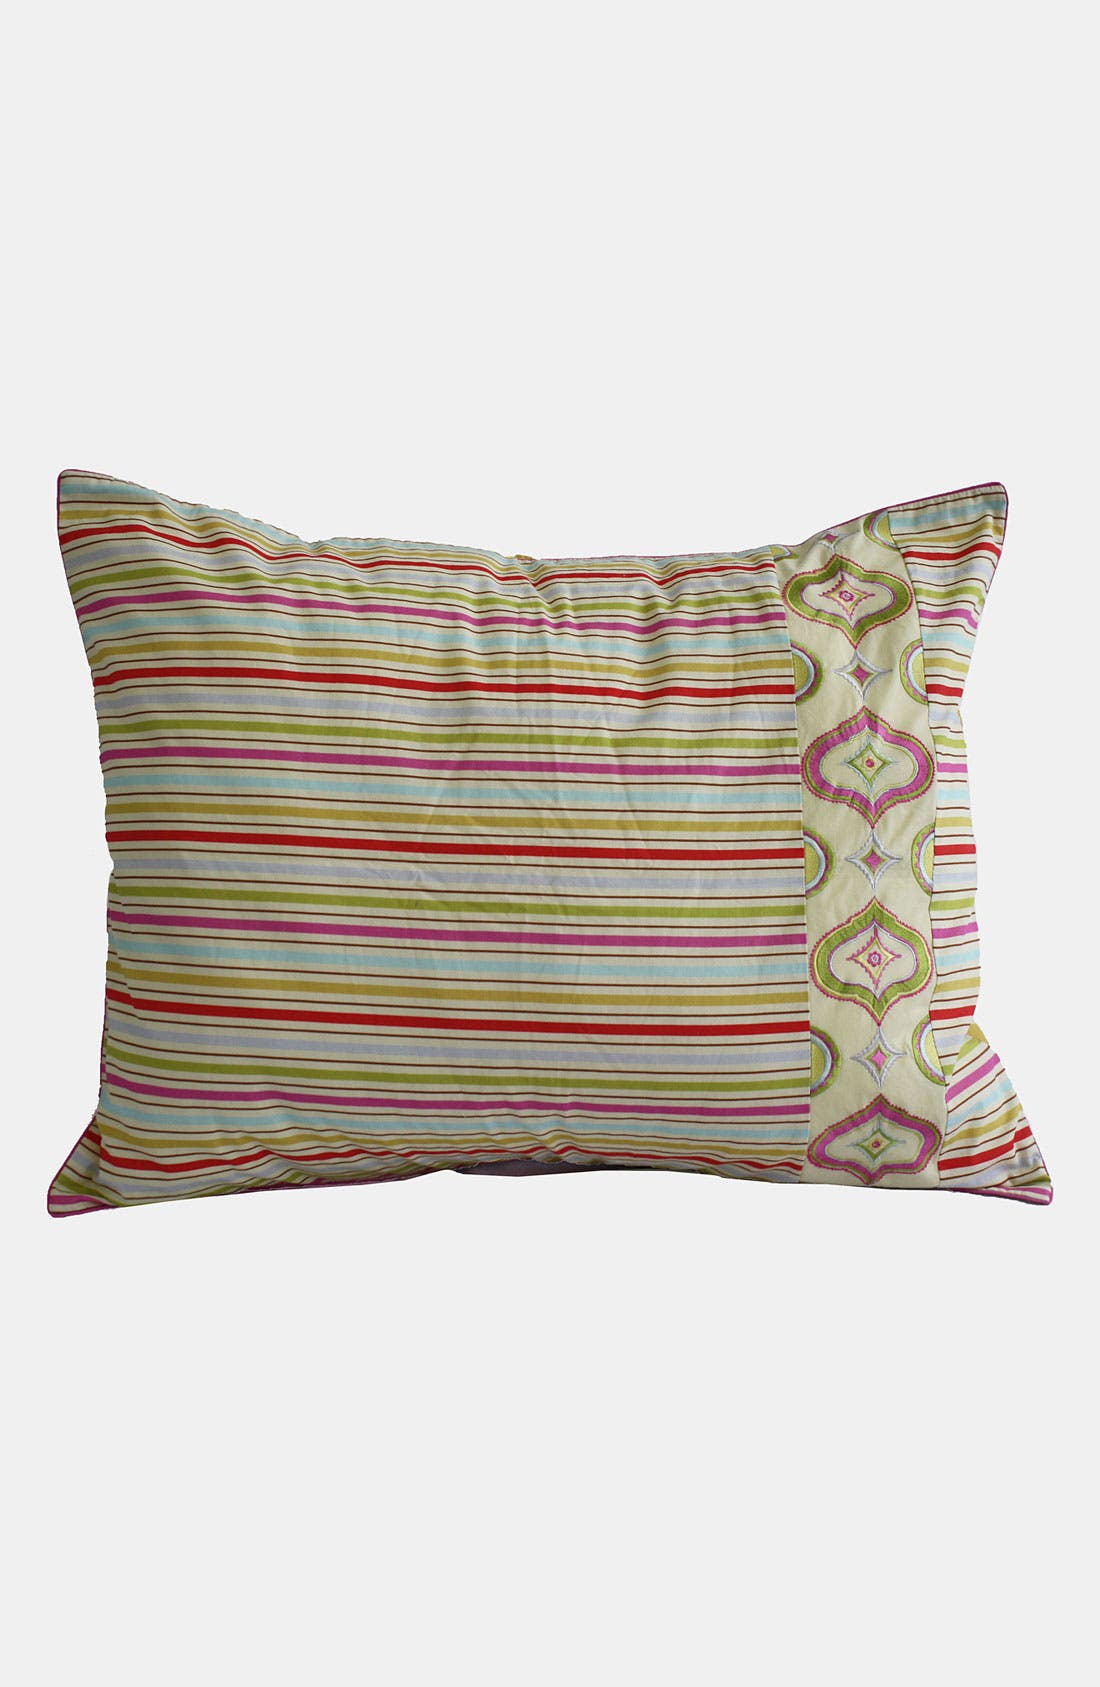 Main Image - Dena Home 'Zarina' Pillow Sham